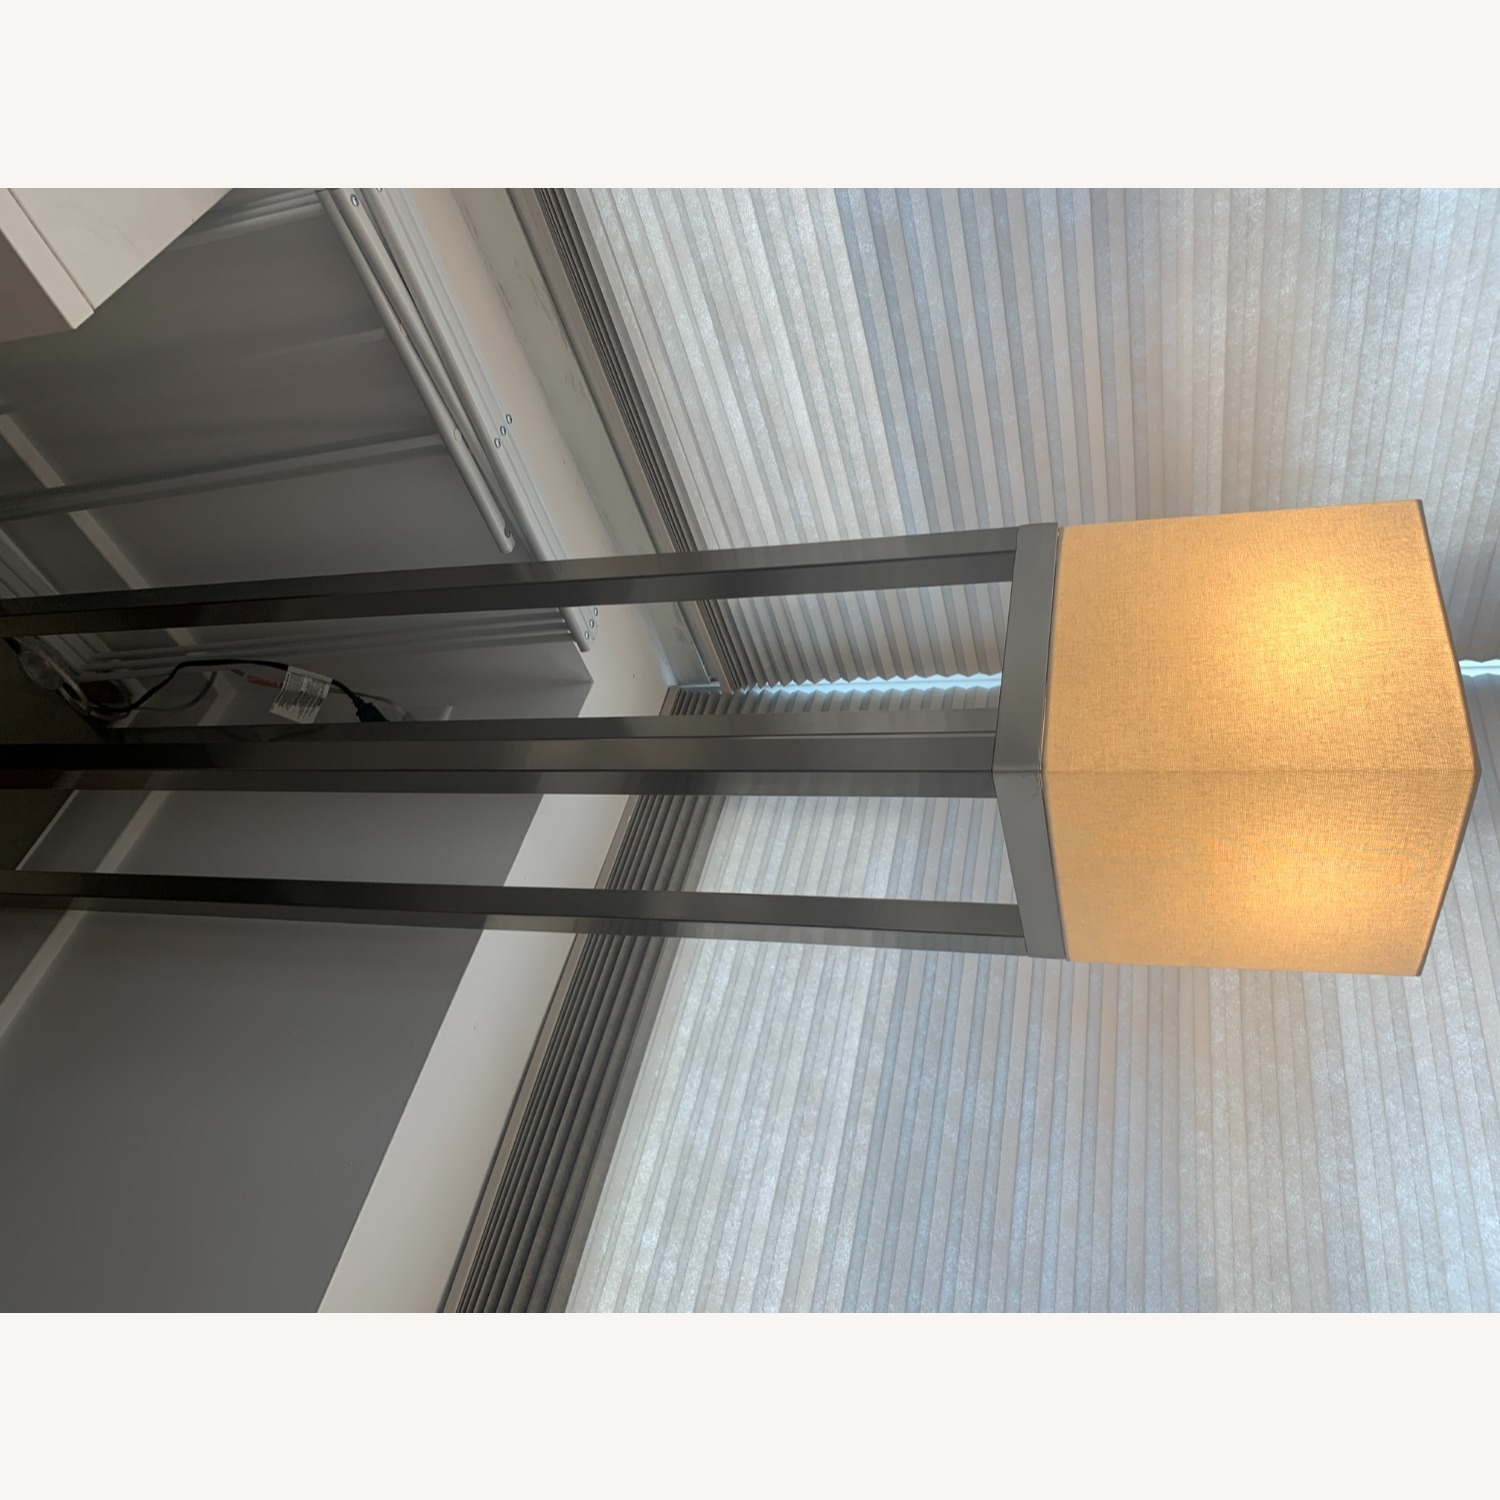 Crate & Barrel Aerin Floor Lamp - image-5